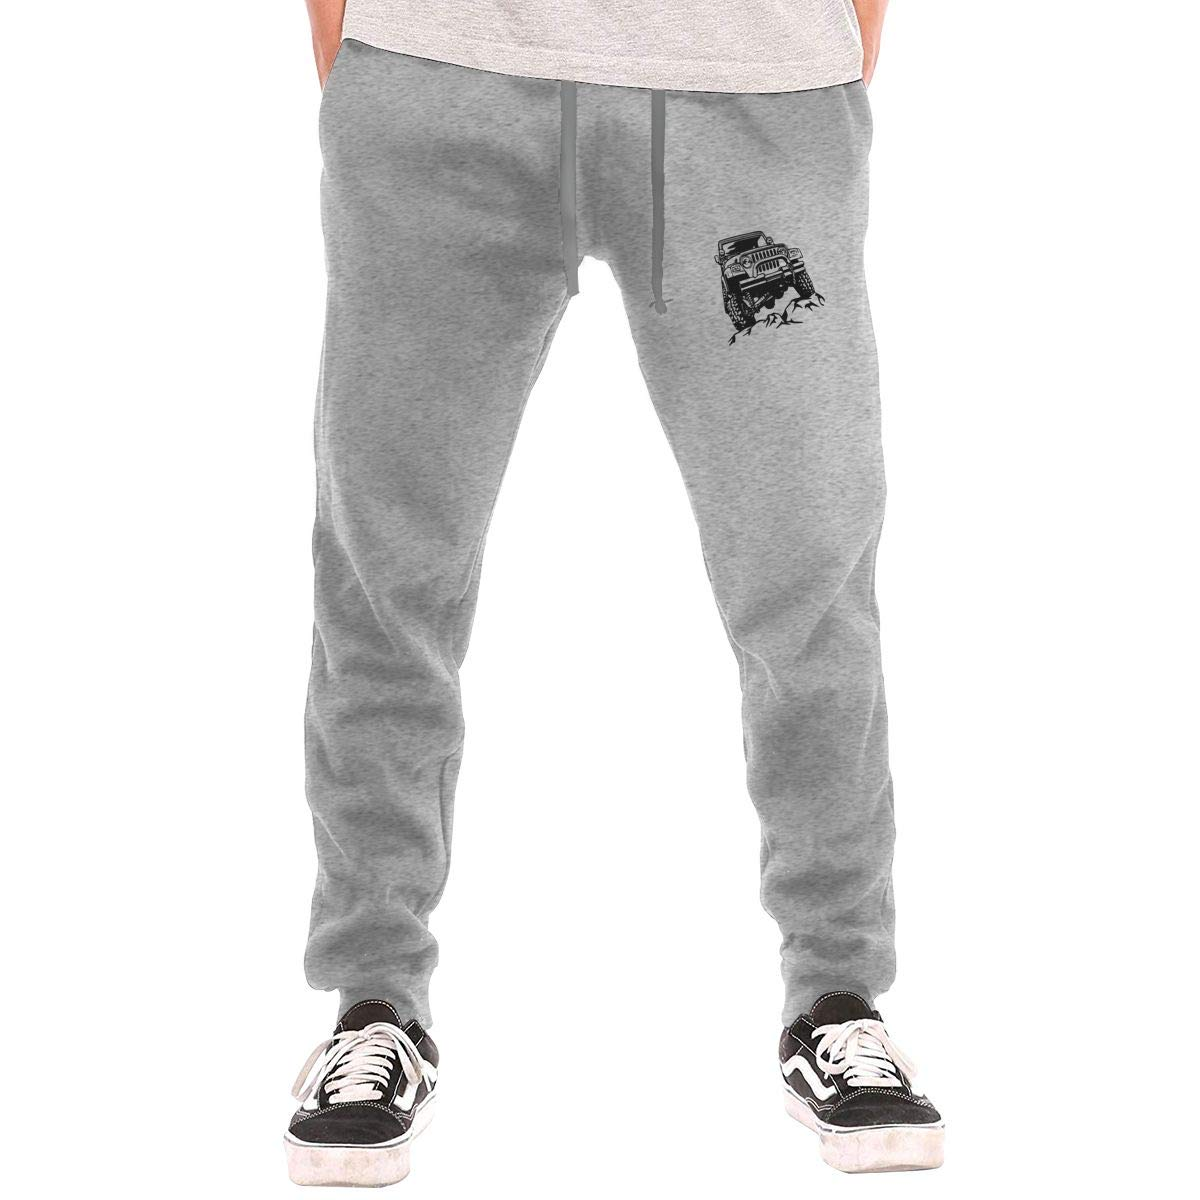 HoodCup Jeep Wrangler Logo Mens Sweatpants Gym Athletic Pants Sport Joggers Workout Sweat Pants